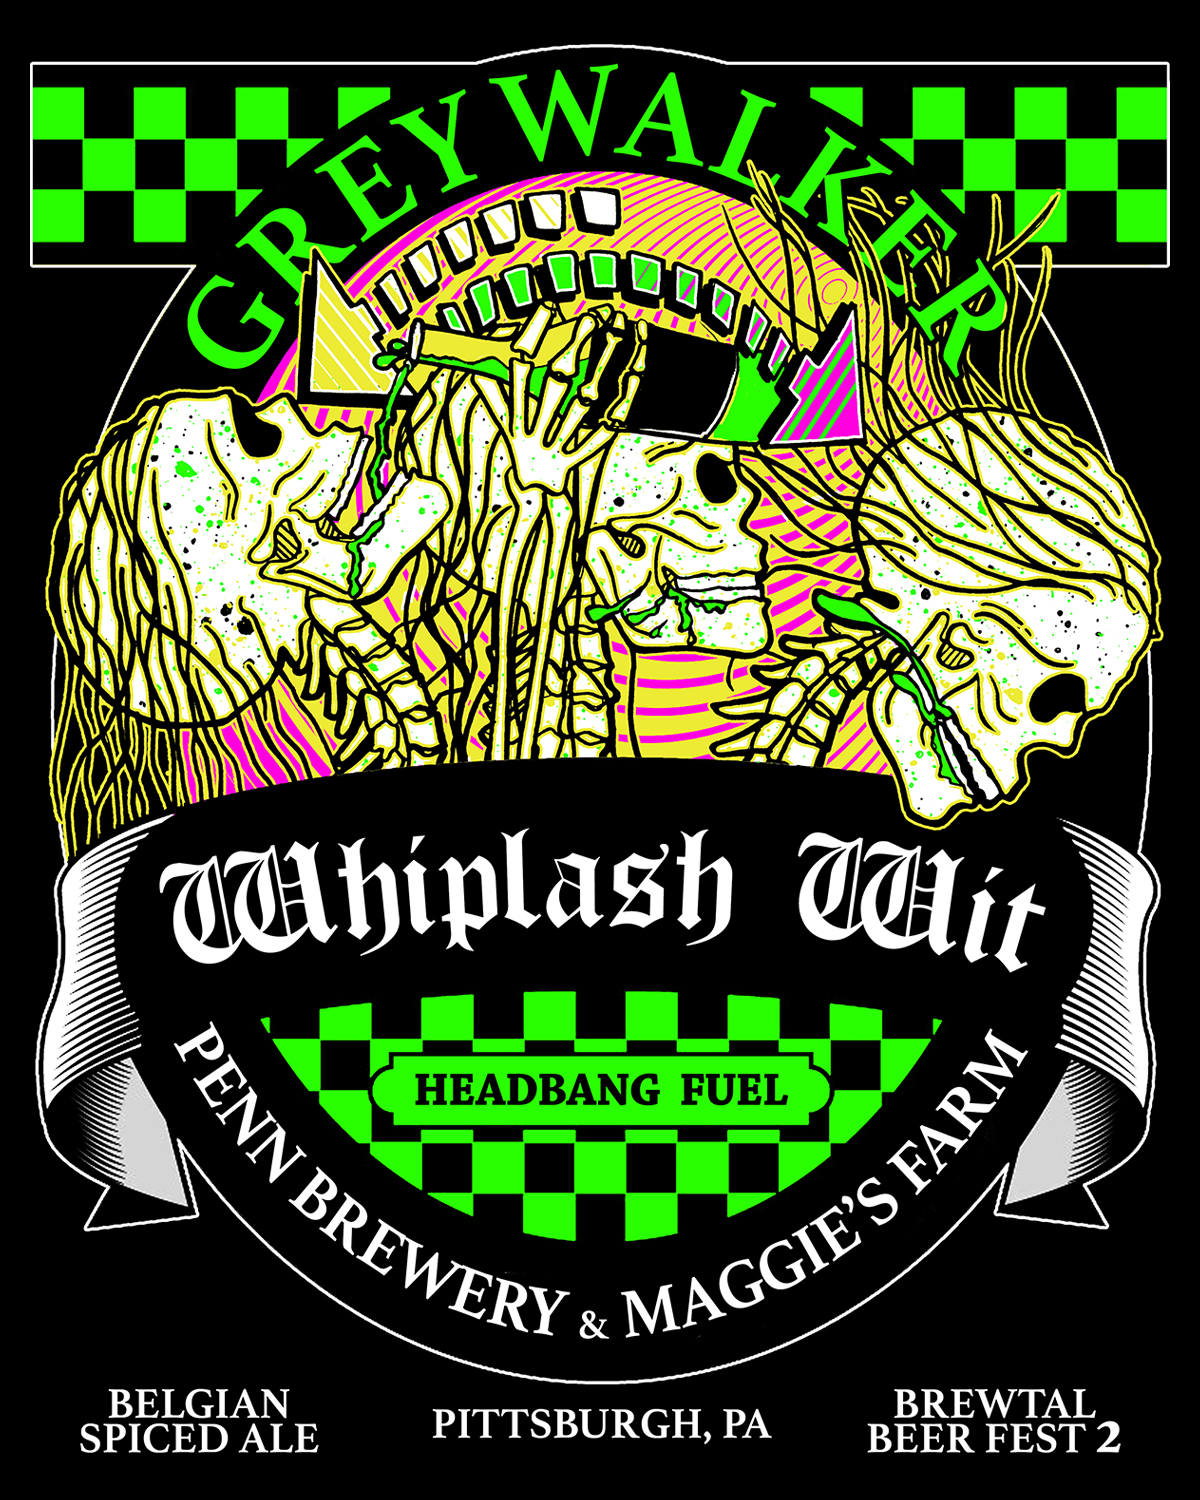 """Whiplash Wit"" Label Artwork for the new Greywalker beer collaboration we're doing with Penn Brewery and Maggie's Farm Rum! Available to the public at  Brewtal Beer Fest 2 ! TICKETS ON SALE NOW!"